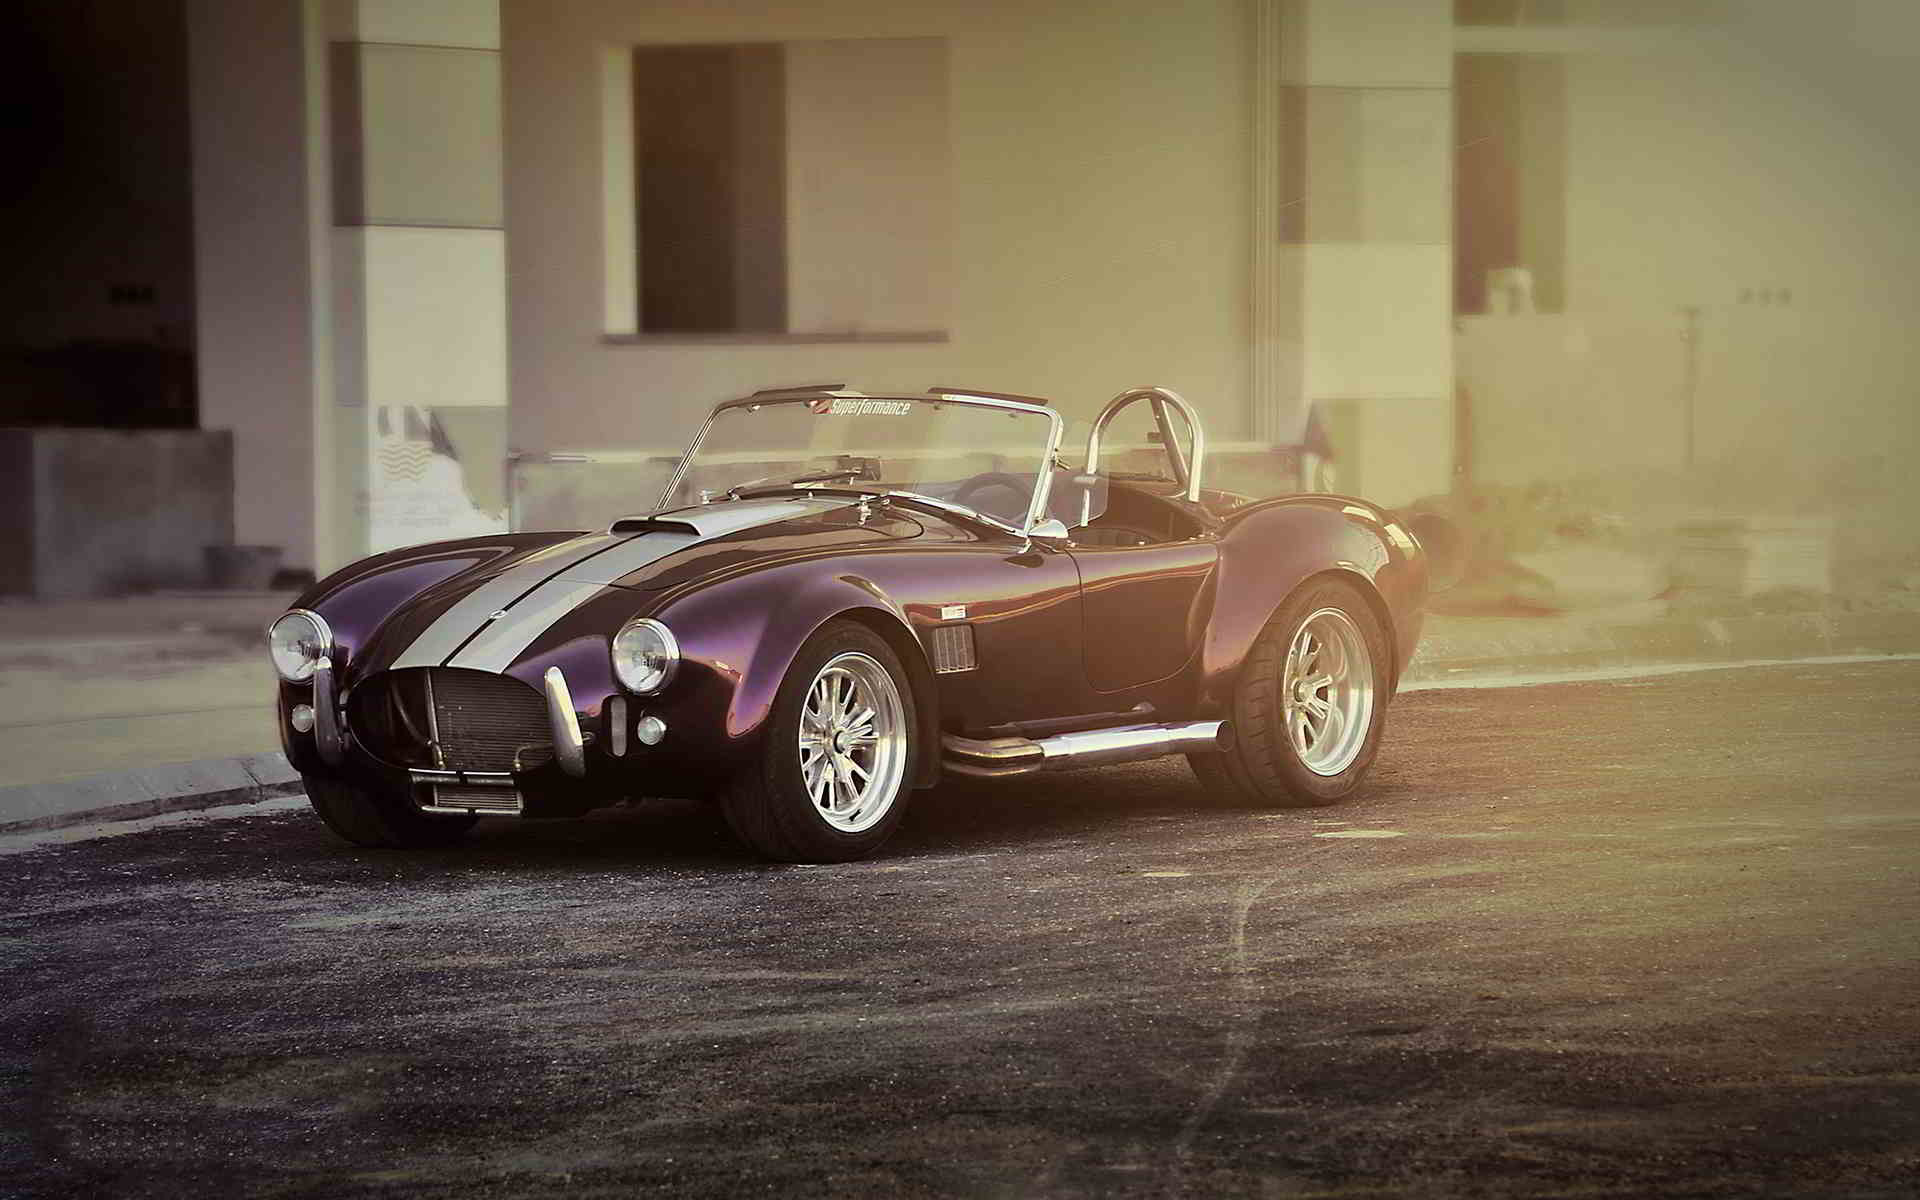 Res: 1920x1200, shelby cobra vintage car wallpapers